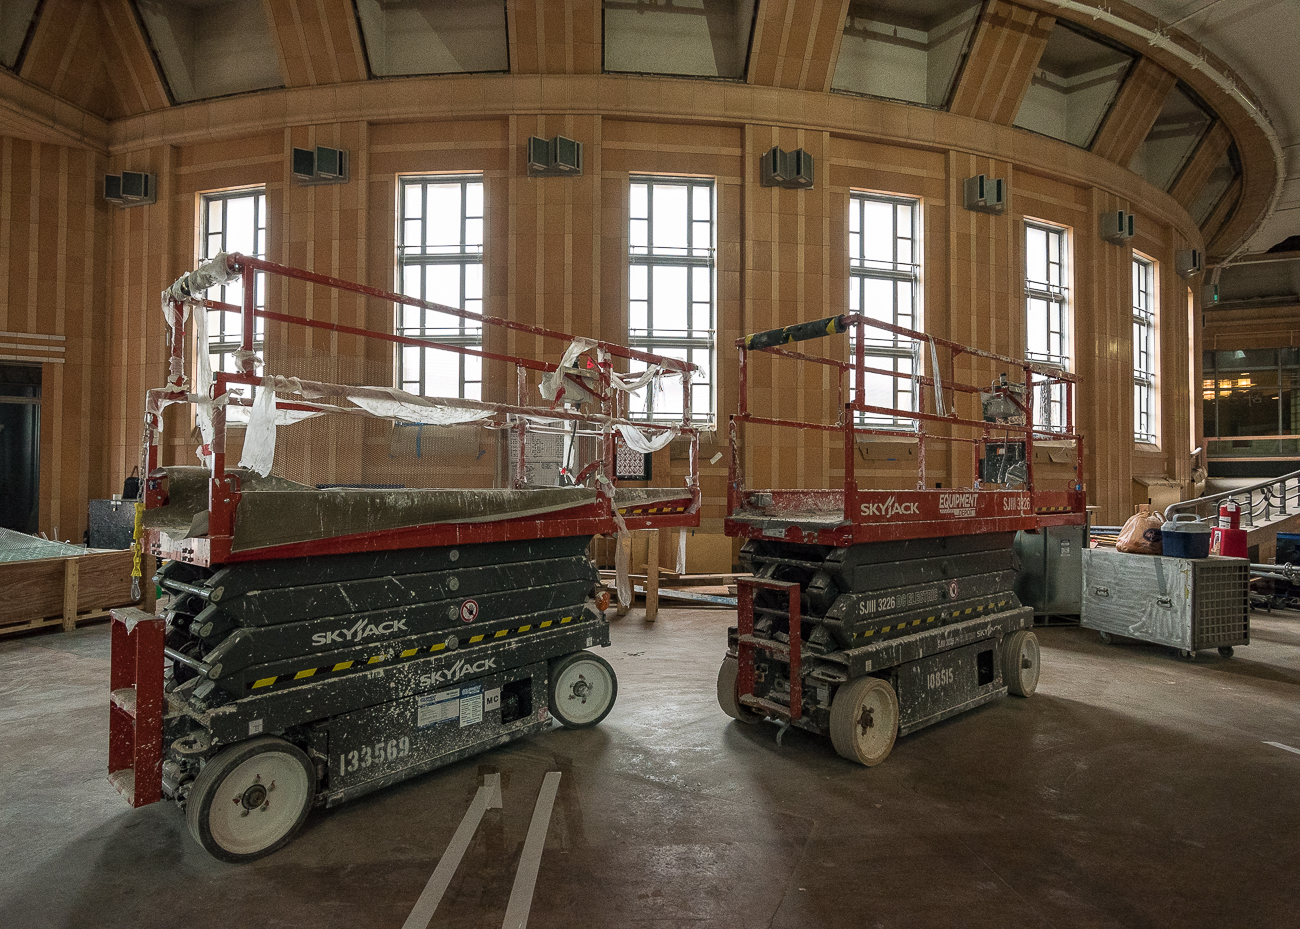 Media outlets were invited to tour the Cincinnati Museum Center at Union Terminal on Thursday, August 31. The $219 million restoration is both on time and on budget, and it's scheduled to conclude in Fall 2018. Along with the repairs it desperately needed, many new features are coming to the building, including the relocation of the Center for Holocaust and Humanity. / Image: Phil Armstrong, Cincinnati Refined // Published: 9.1.17